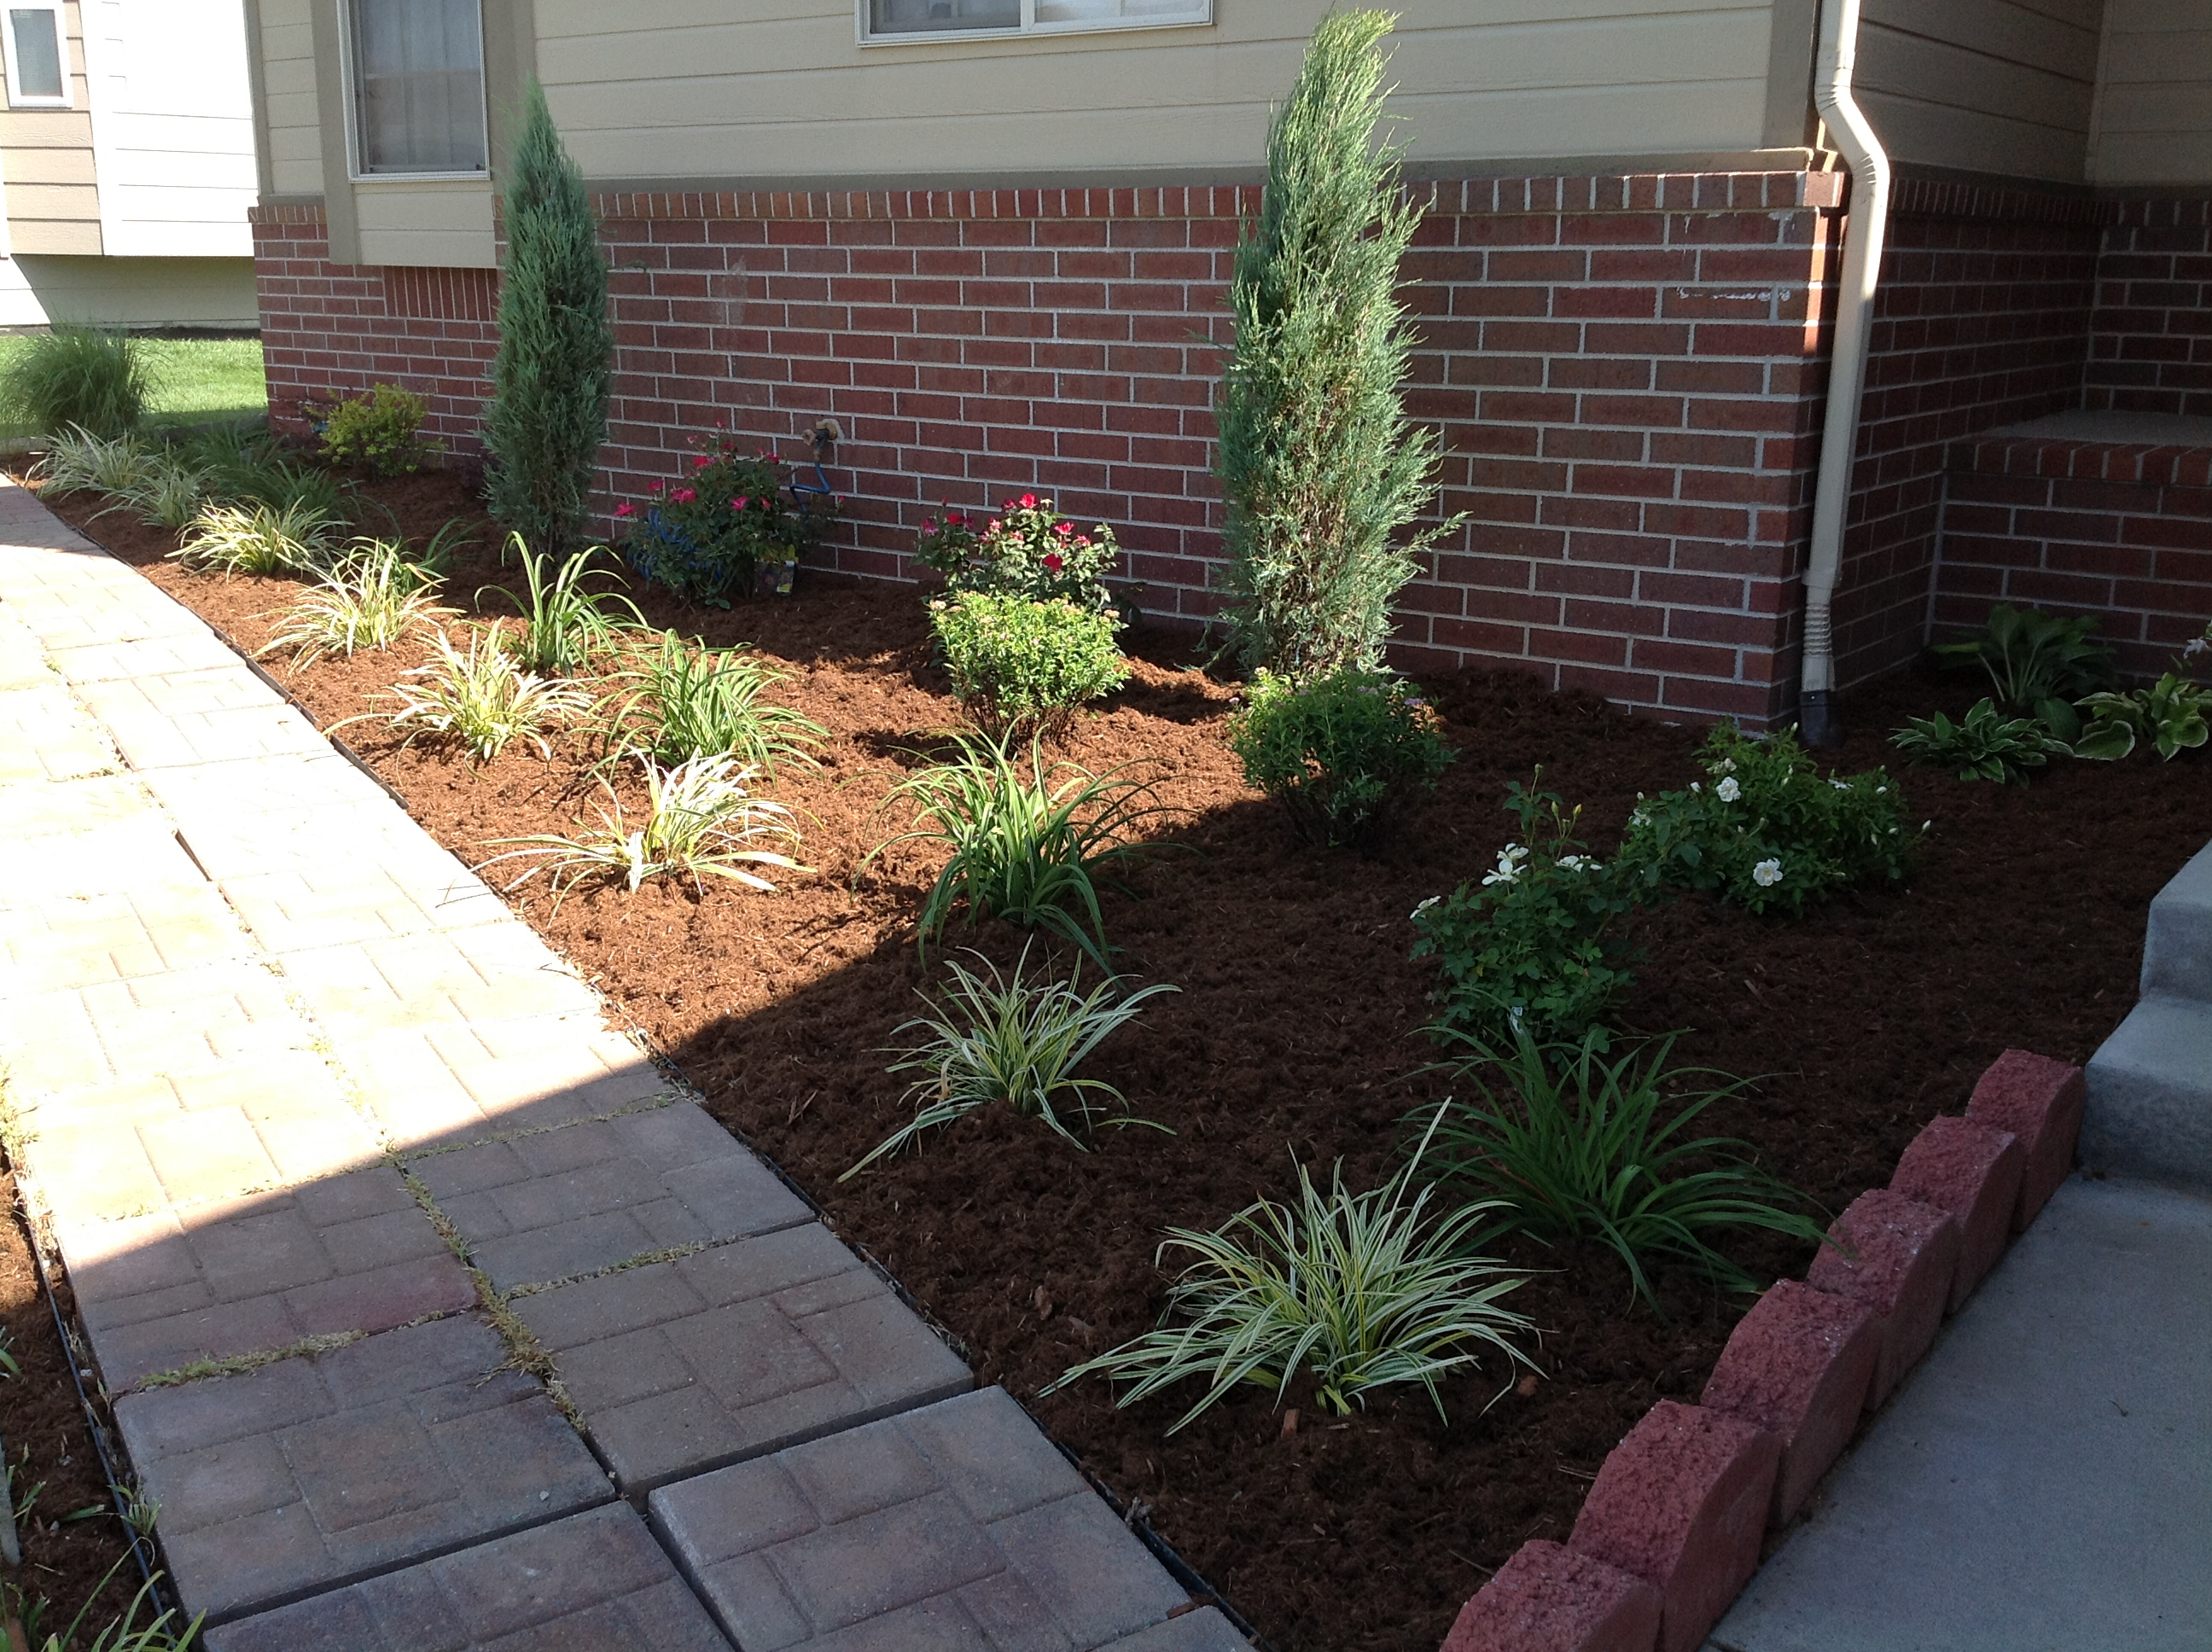 Landscaping ideas locating plants landscape design for Lawn and garden services